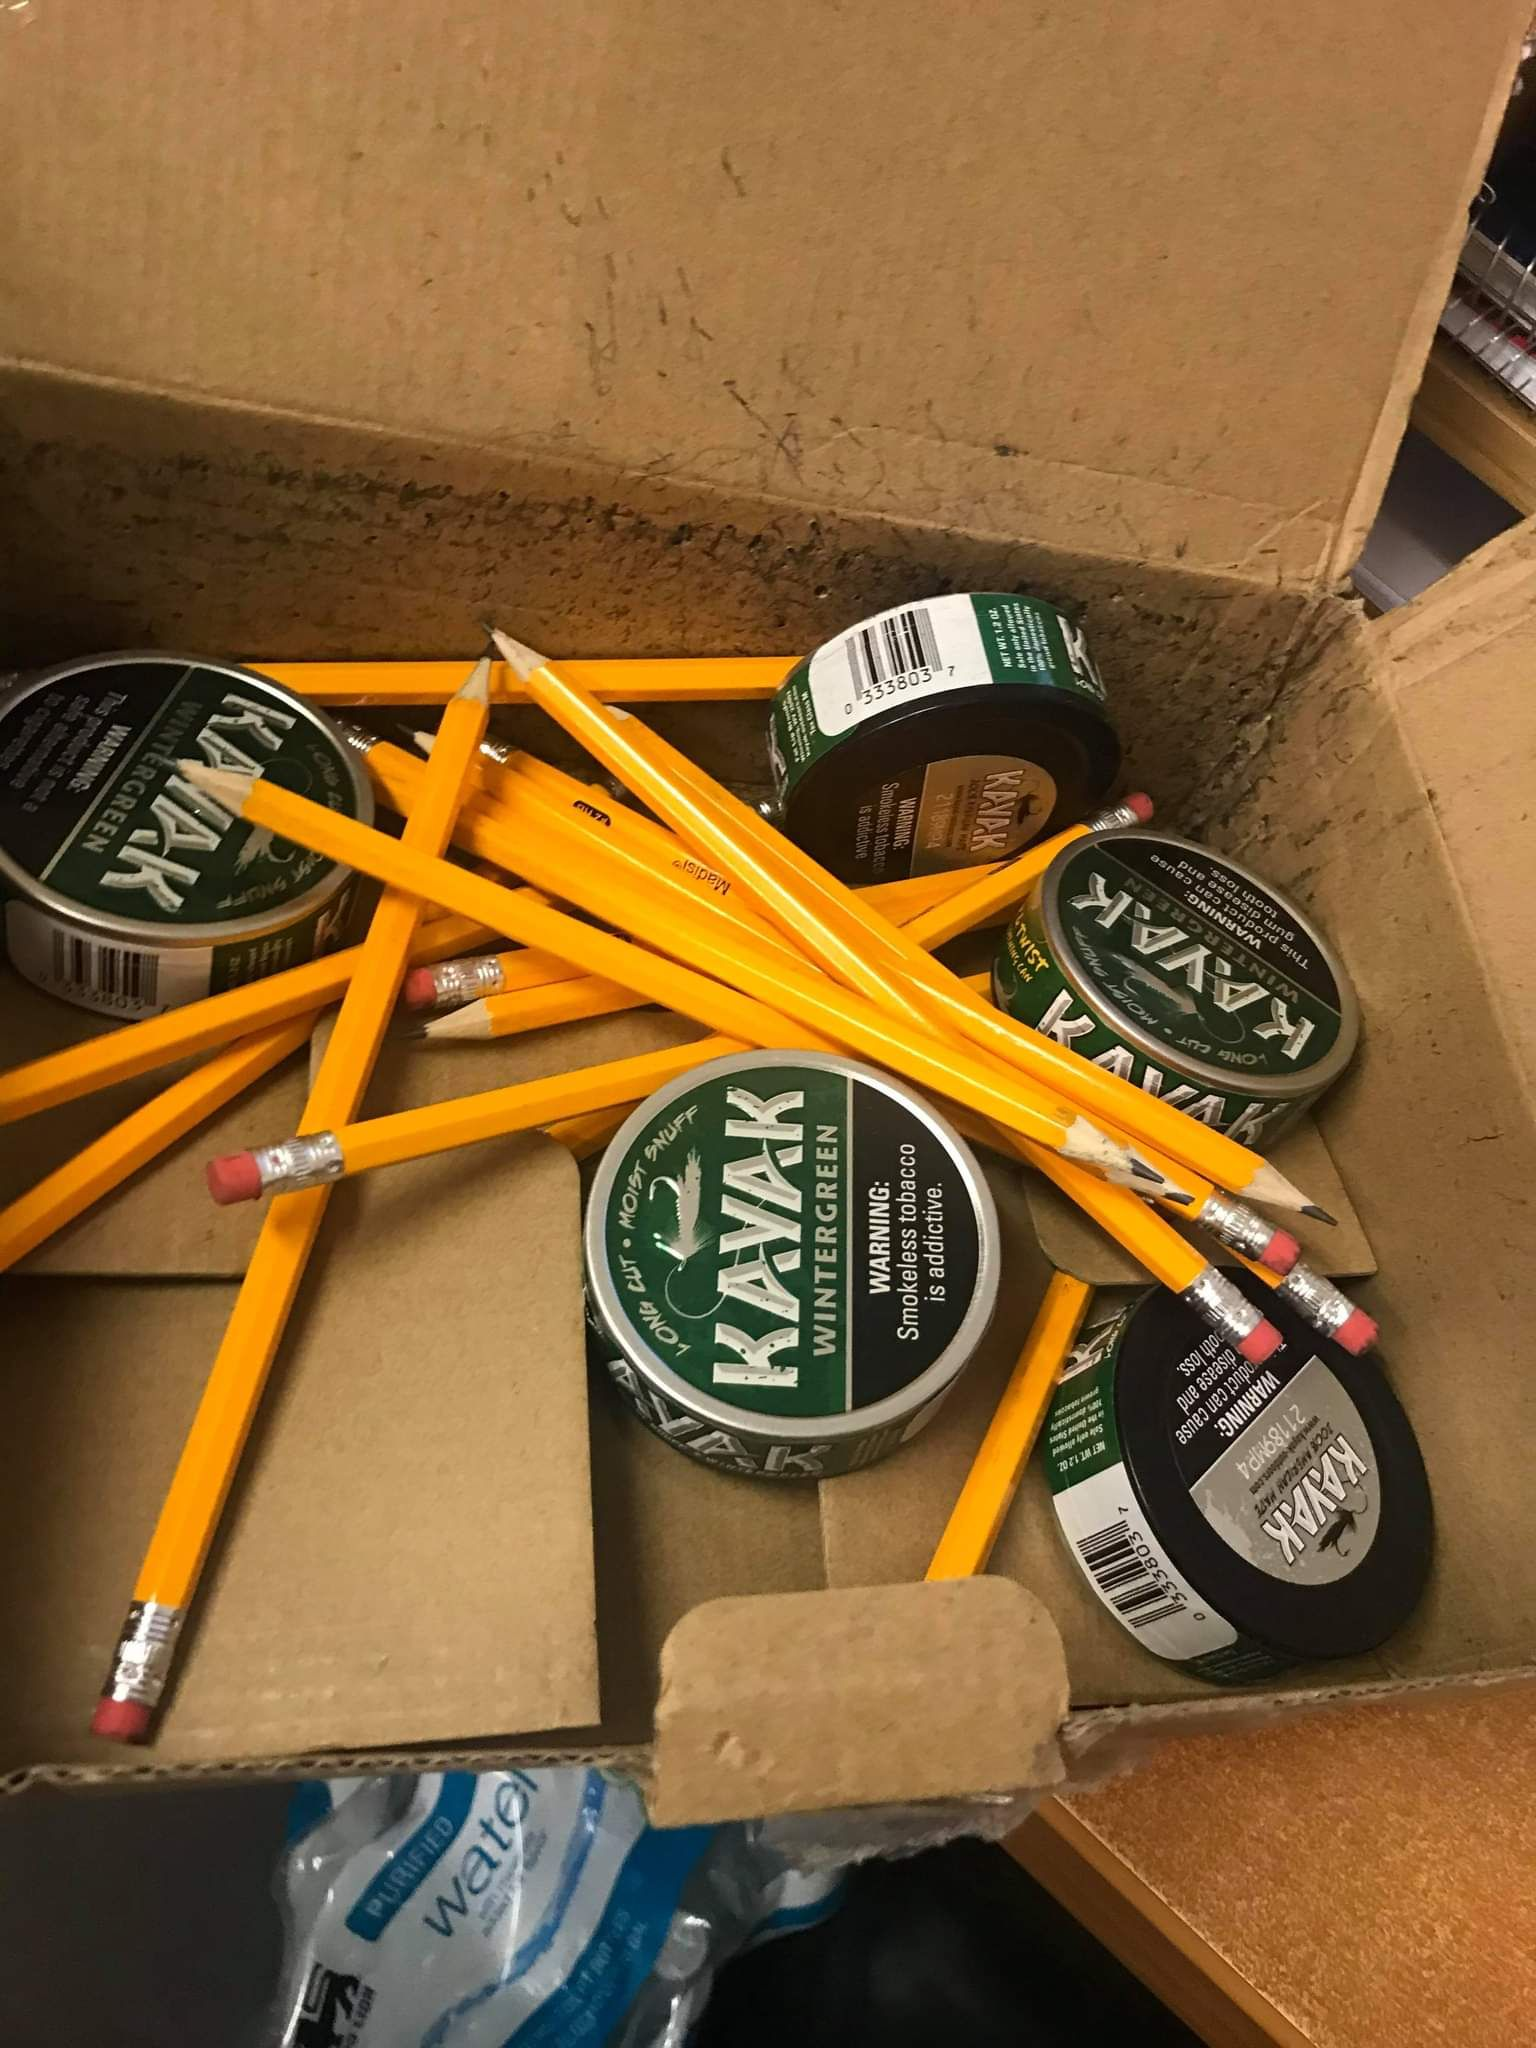 My wife ordered 360 pencils for her classroom from Amazon. I think she was sent some poor warehouse worker's secret stash.